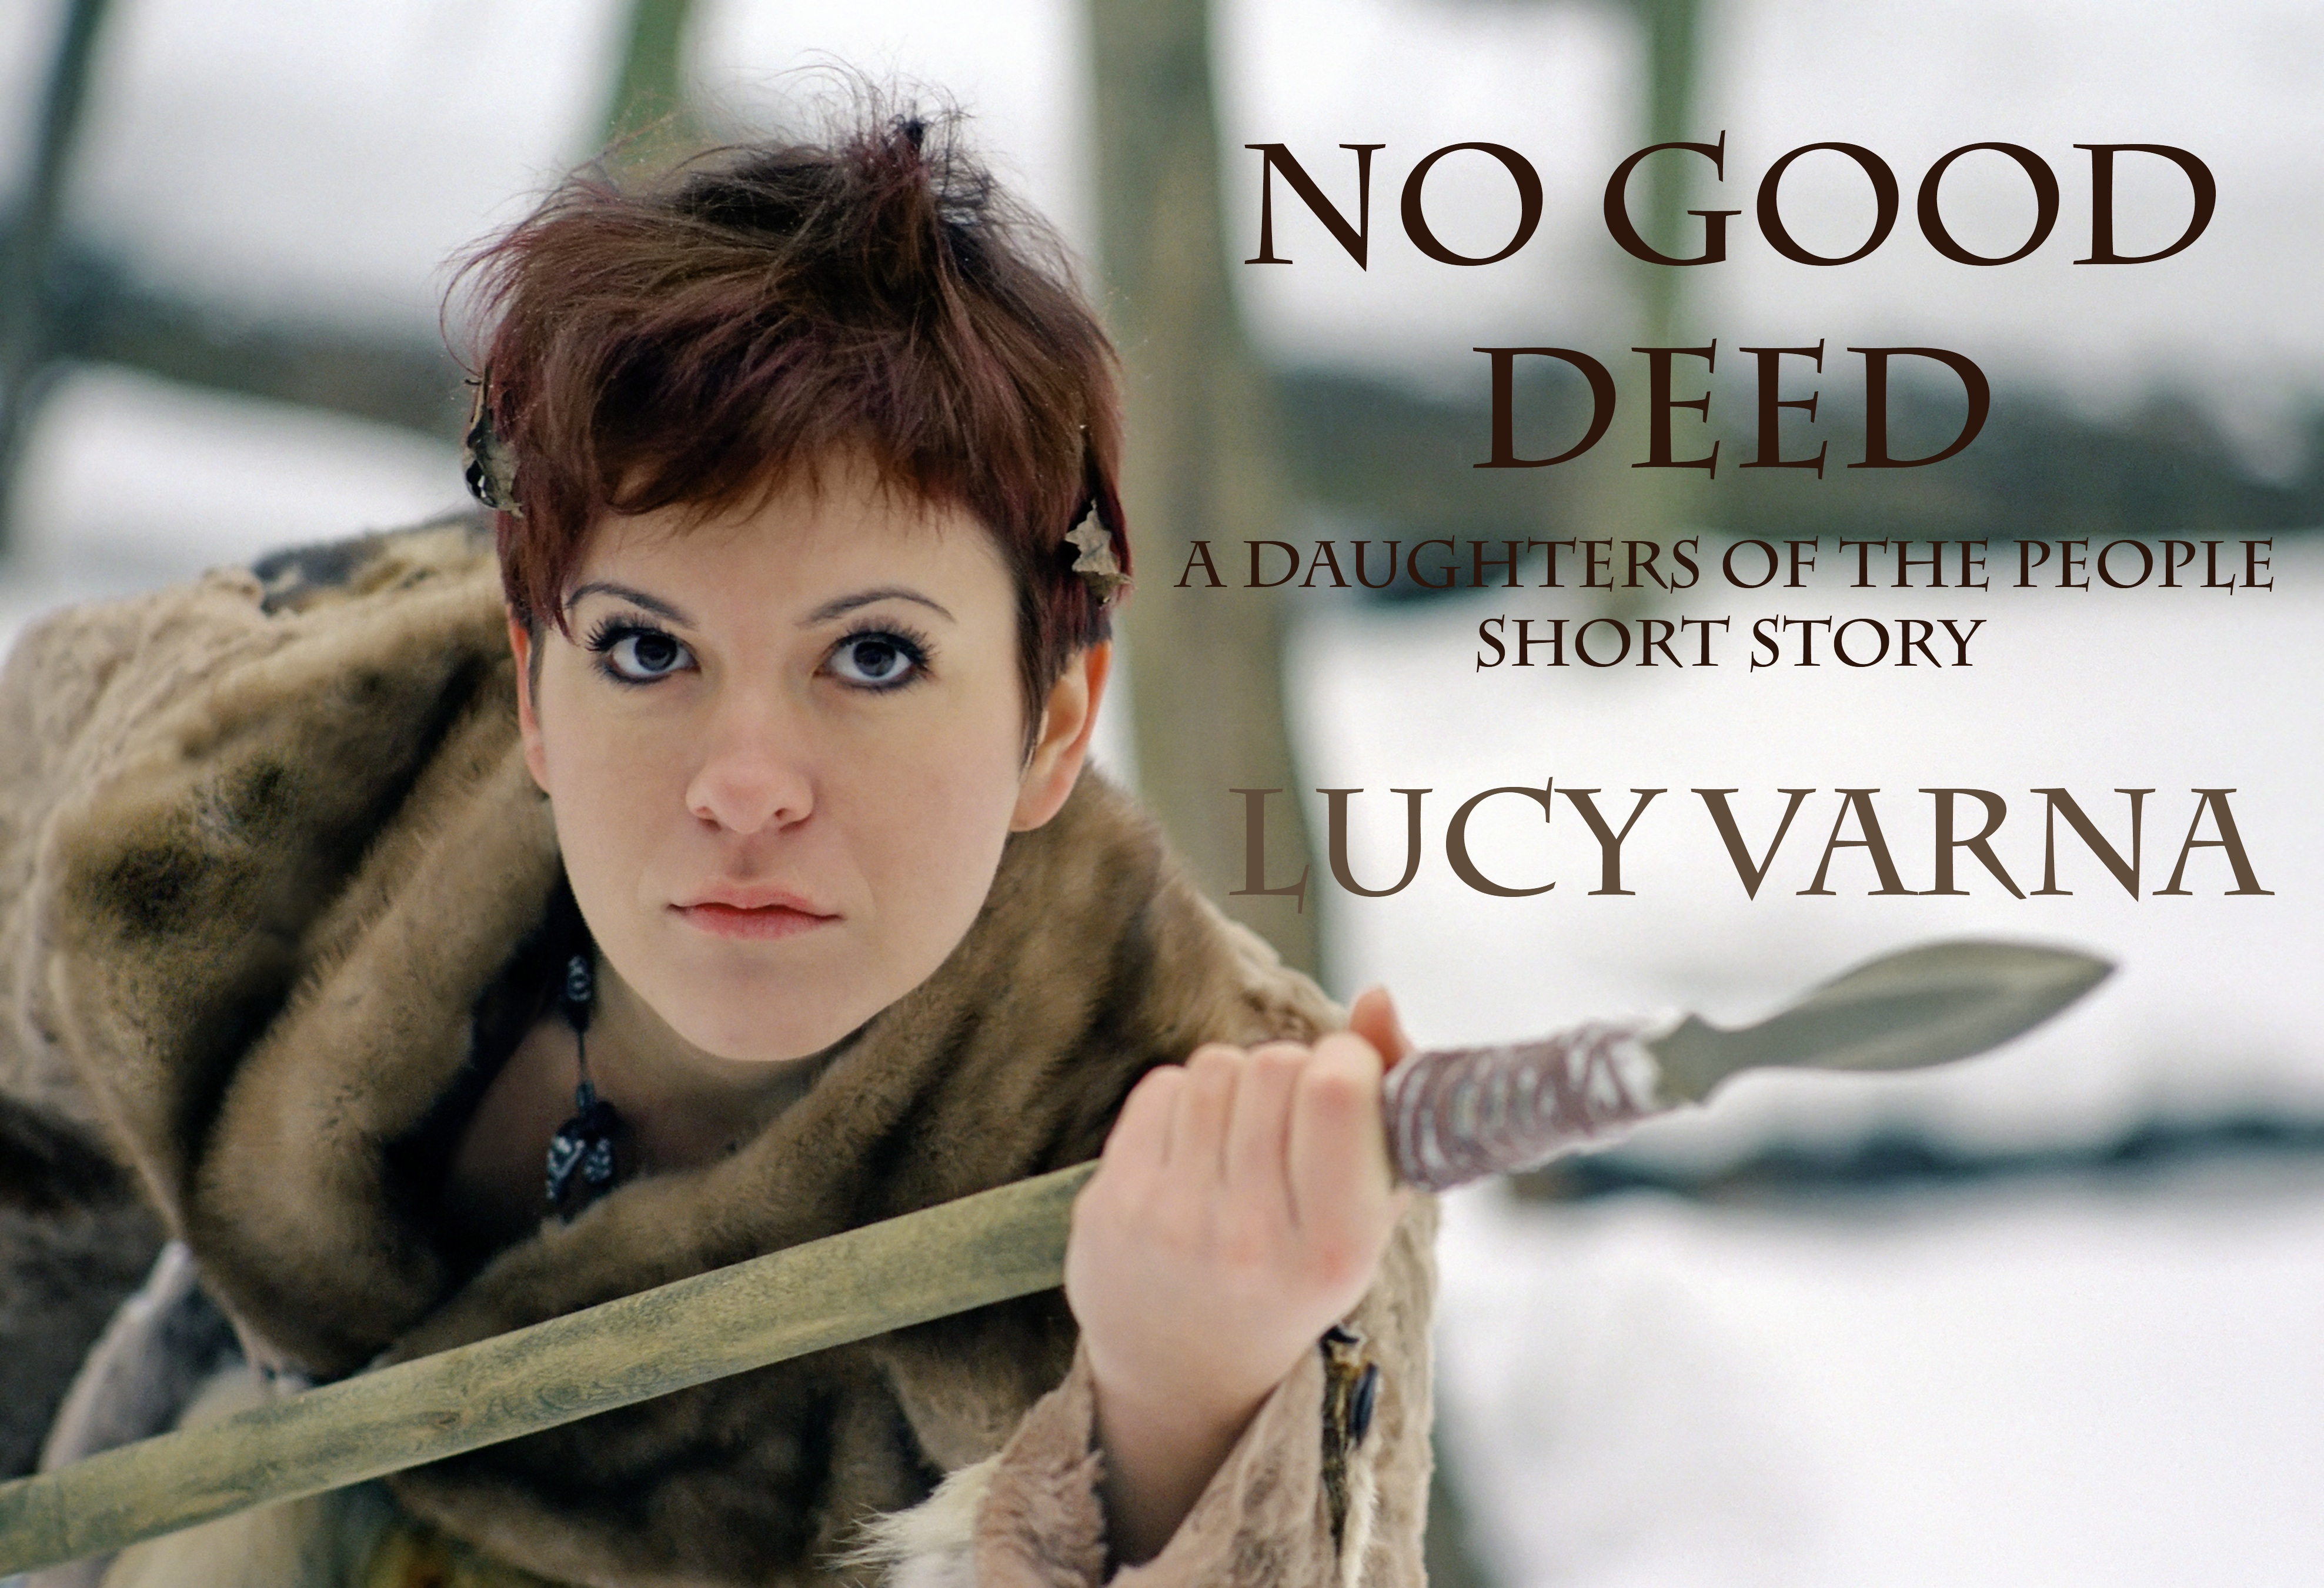 No Good Deed by Lucy Varna